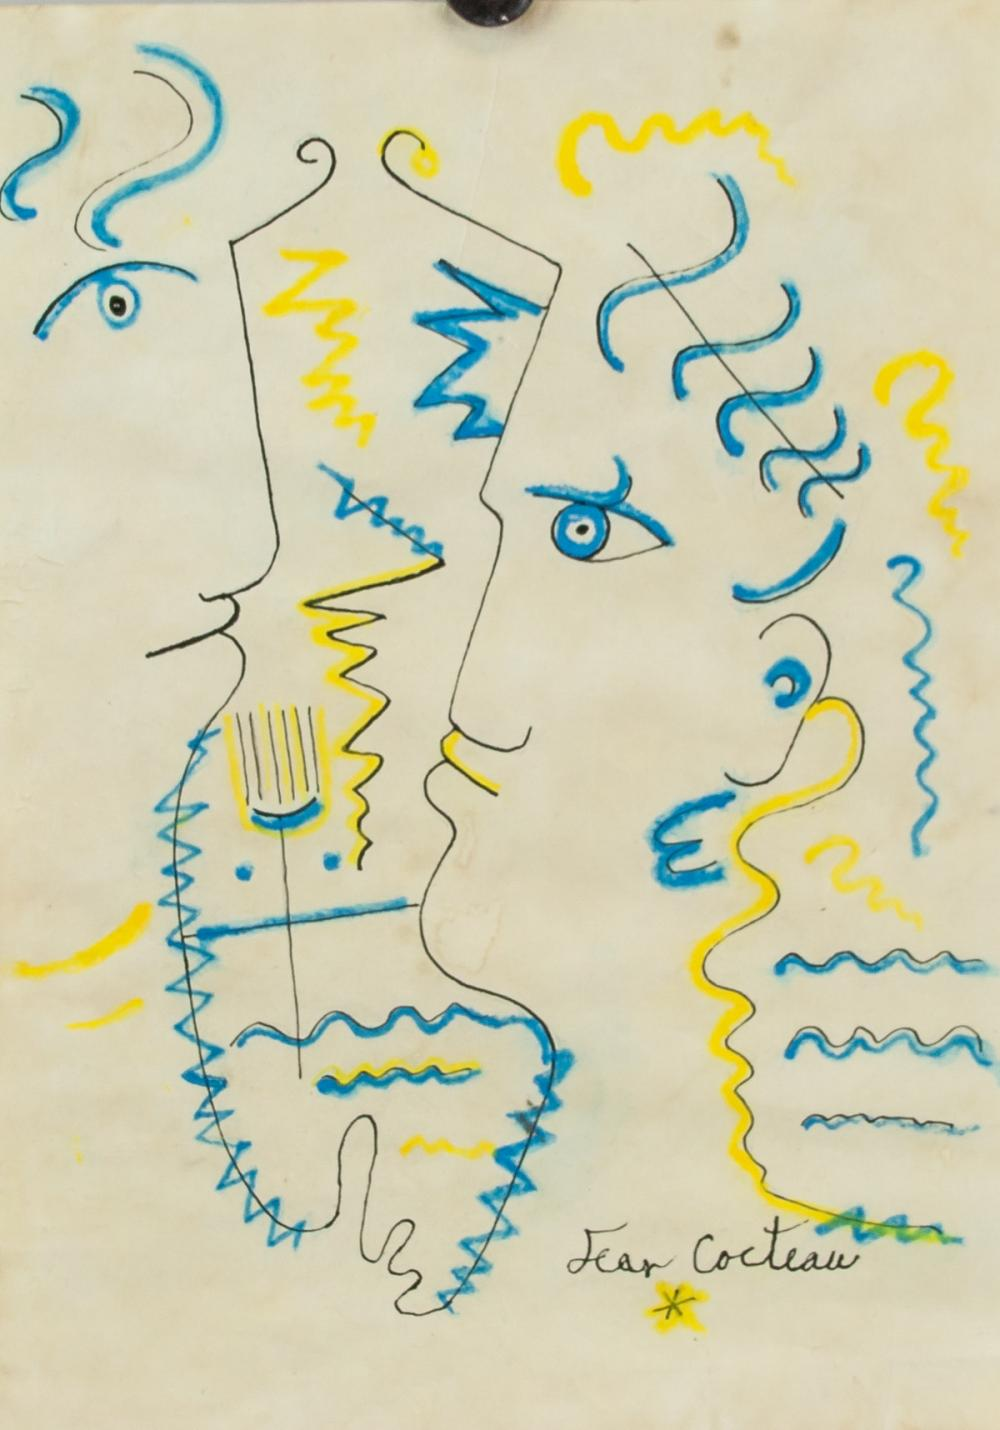 jean cocteau thesis Claude arnaud's biography of jean cocteau shows how the artist lived a life nourished by infinity.